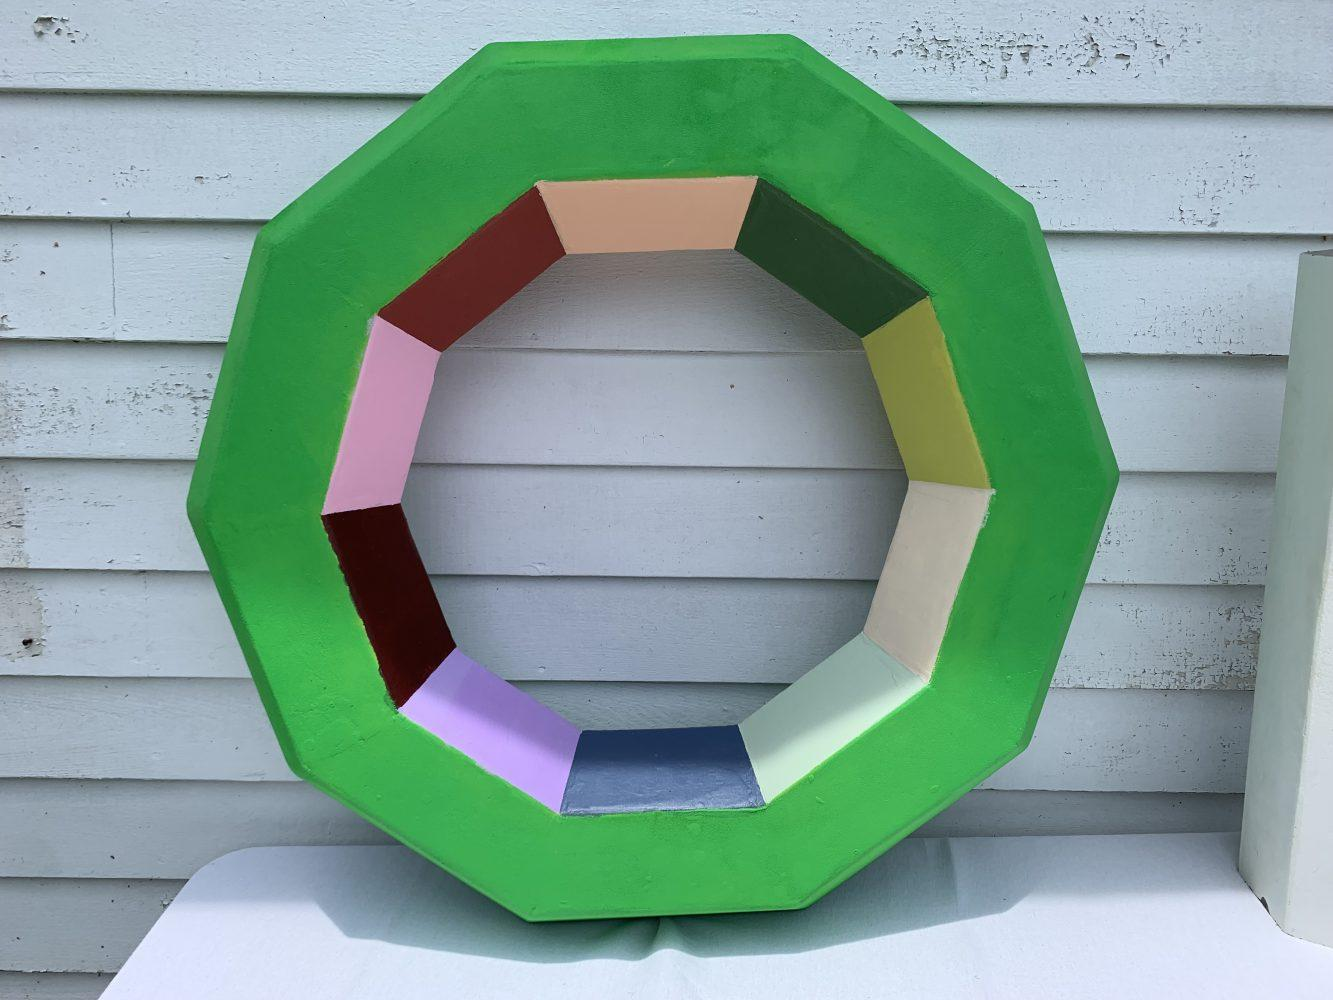 Caroline Armijo constructred this decagon from a coal ash encapsulated hexagonal-shaped post.